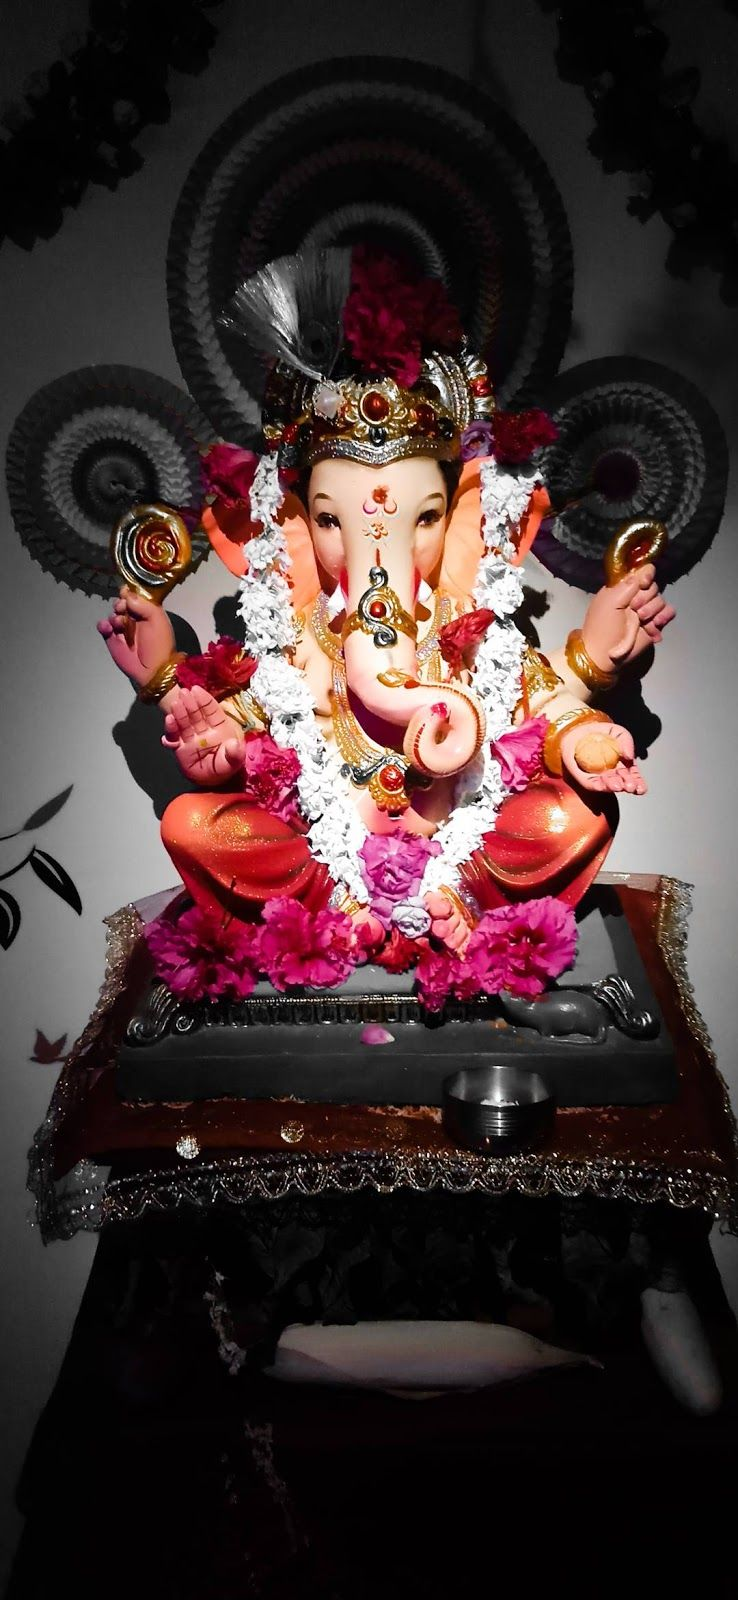 Lord Ganesha Ultra Hd Wallpapers For Mobile And Pc Background God Ganesha Full Hd Wallpapers Ga Ganesh Chaturthi Images Lord Ganesha Lord Ganesha Paintings High quality ultra hd lord ganesha hd